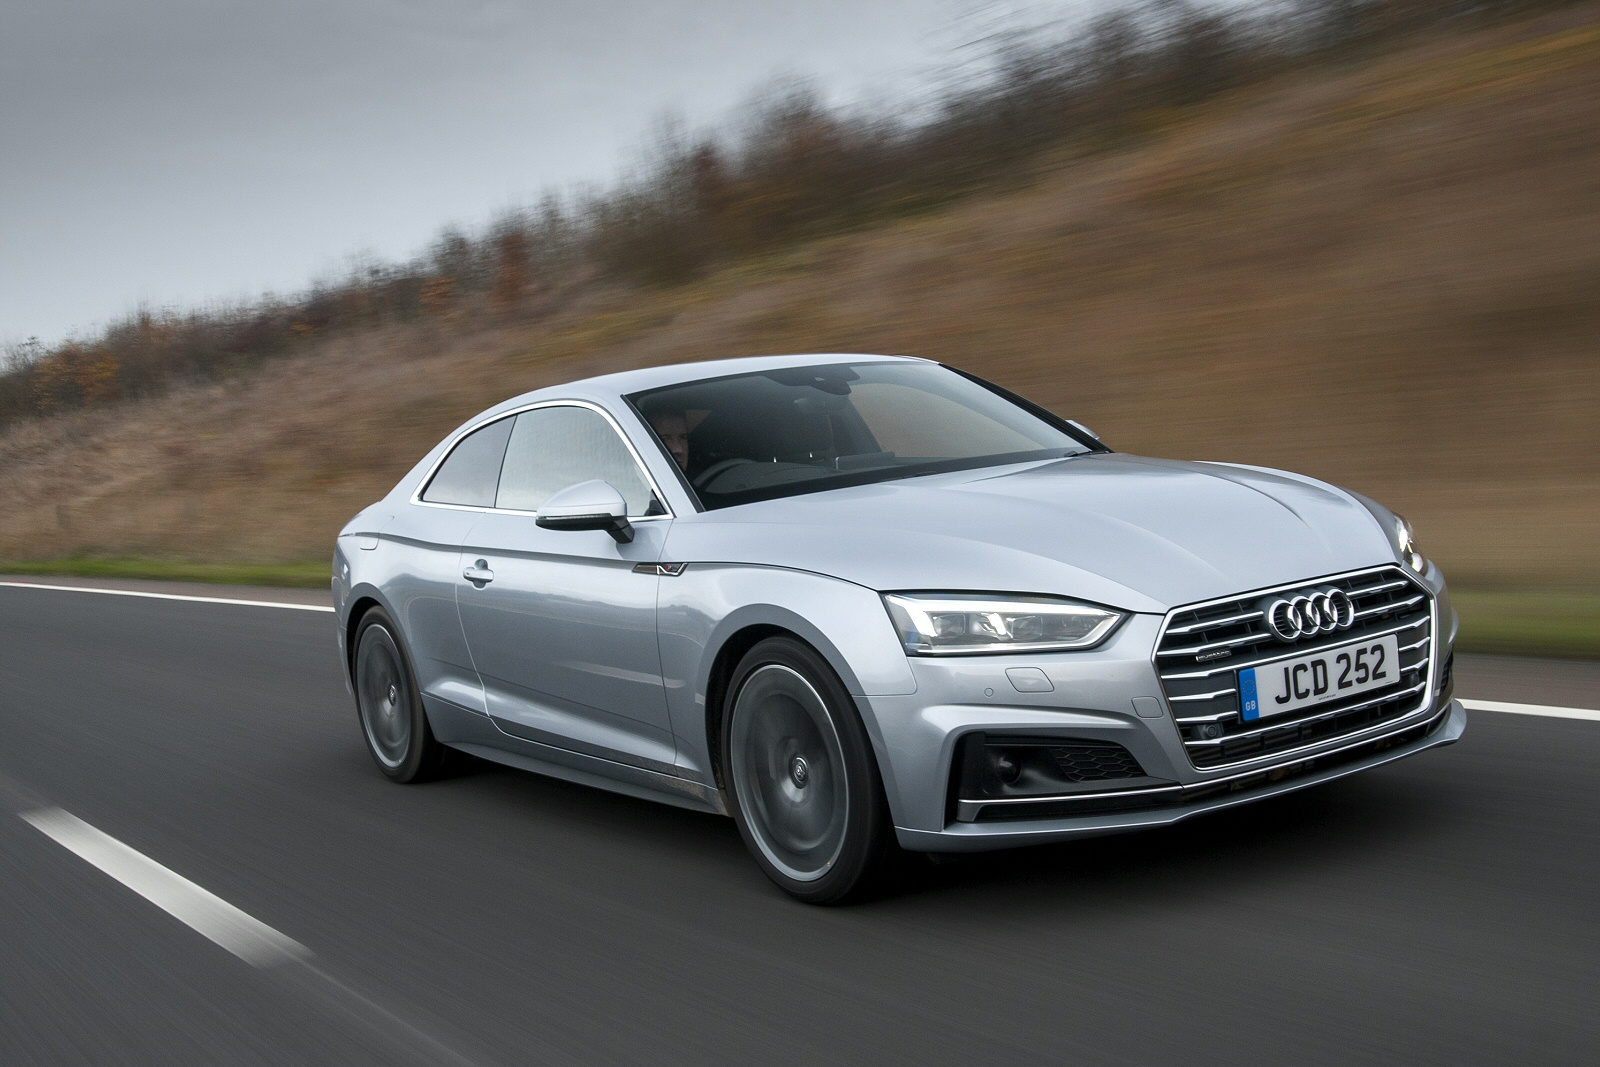 new audi a5 2 0 tdi quattro sport 2dr s tronic tech pack diesel coupe for sale hereford audi. Black Bedroom Furniture Sets. Home Design Ideas